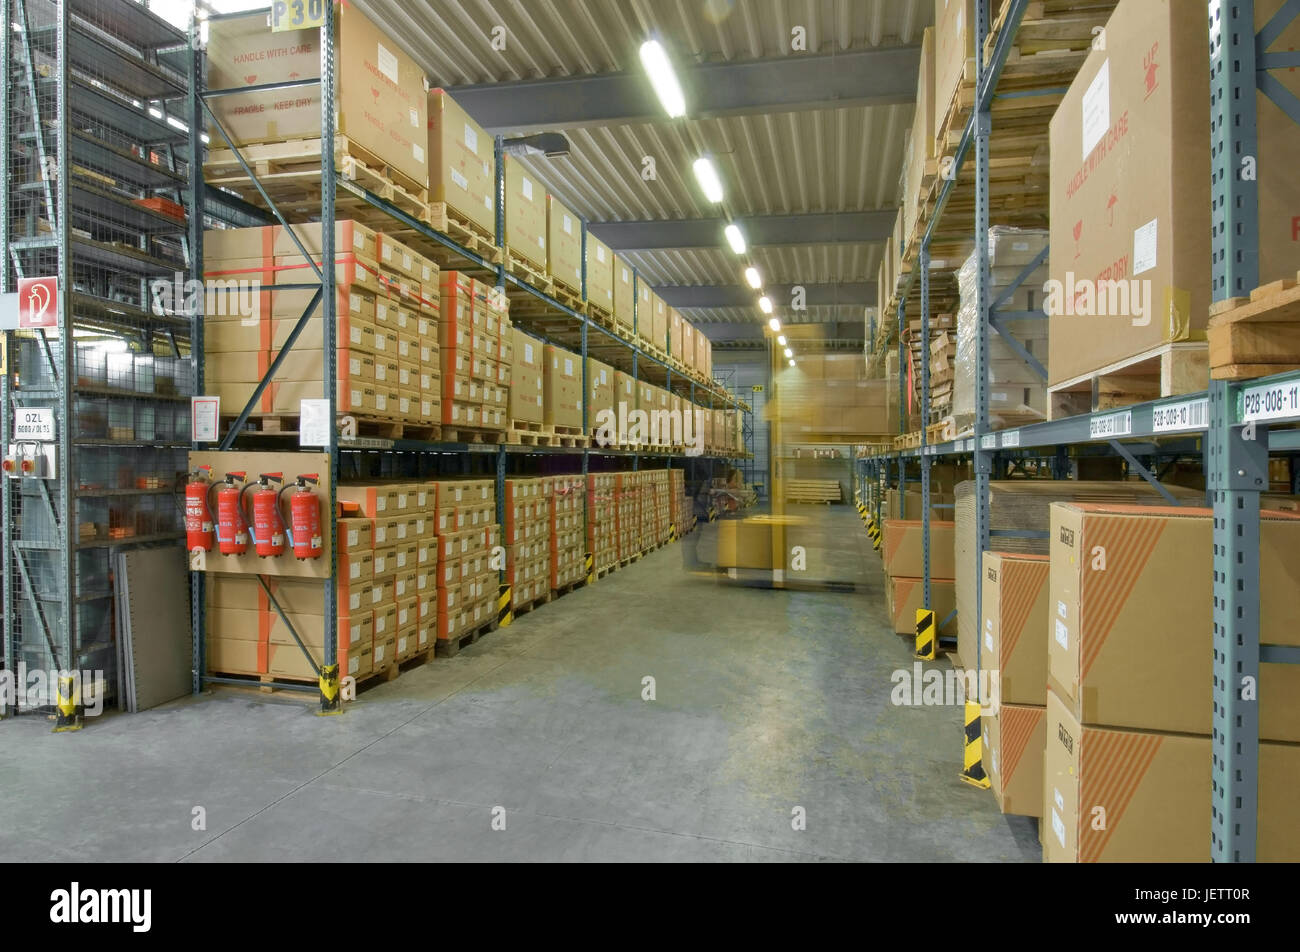 Automatic warehouse with forklift in Bewegungsunsch?rfe, Hochregallager mit Gabelstapler in Bewegungsunschaerfe Stock Photo